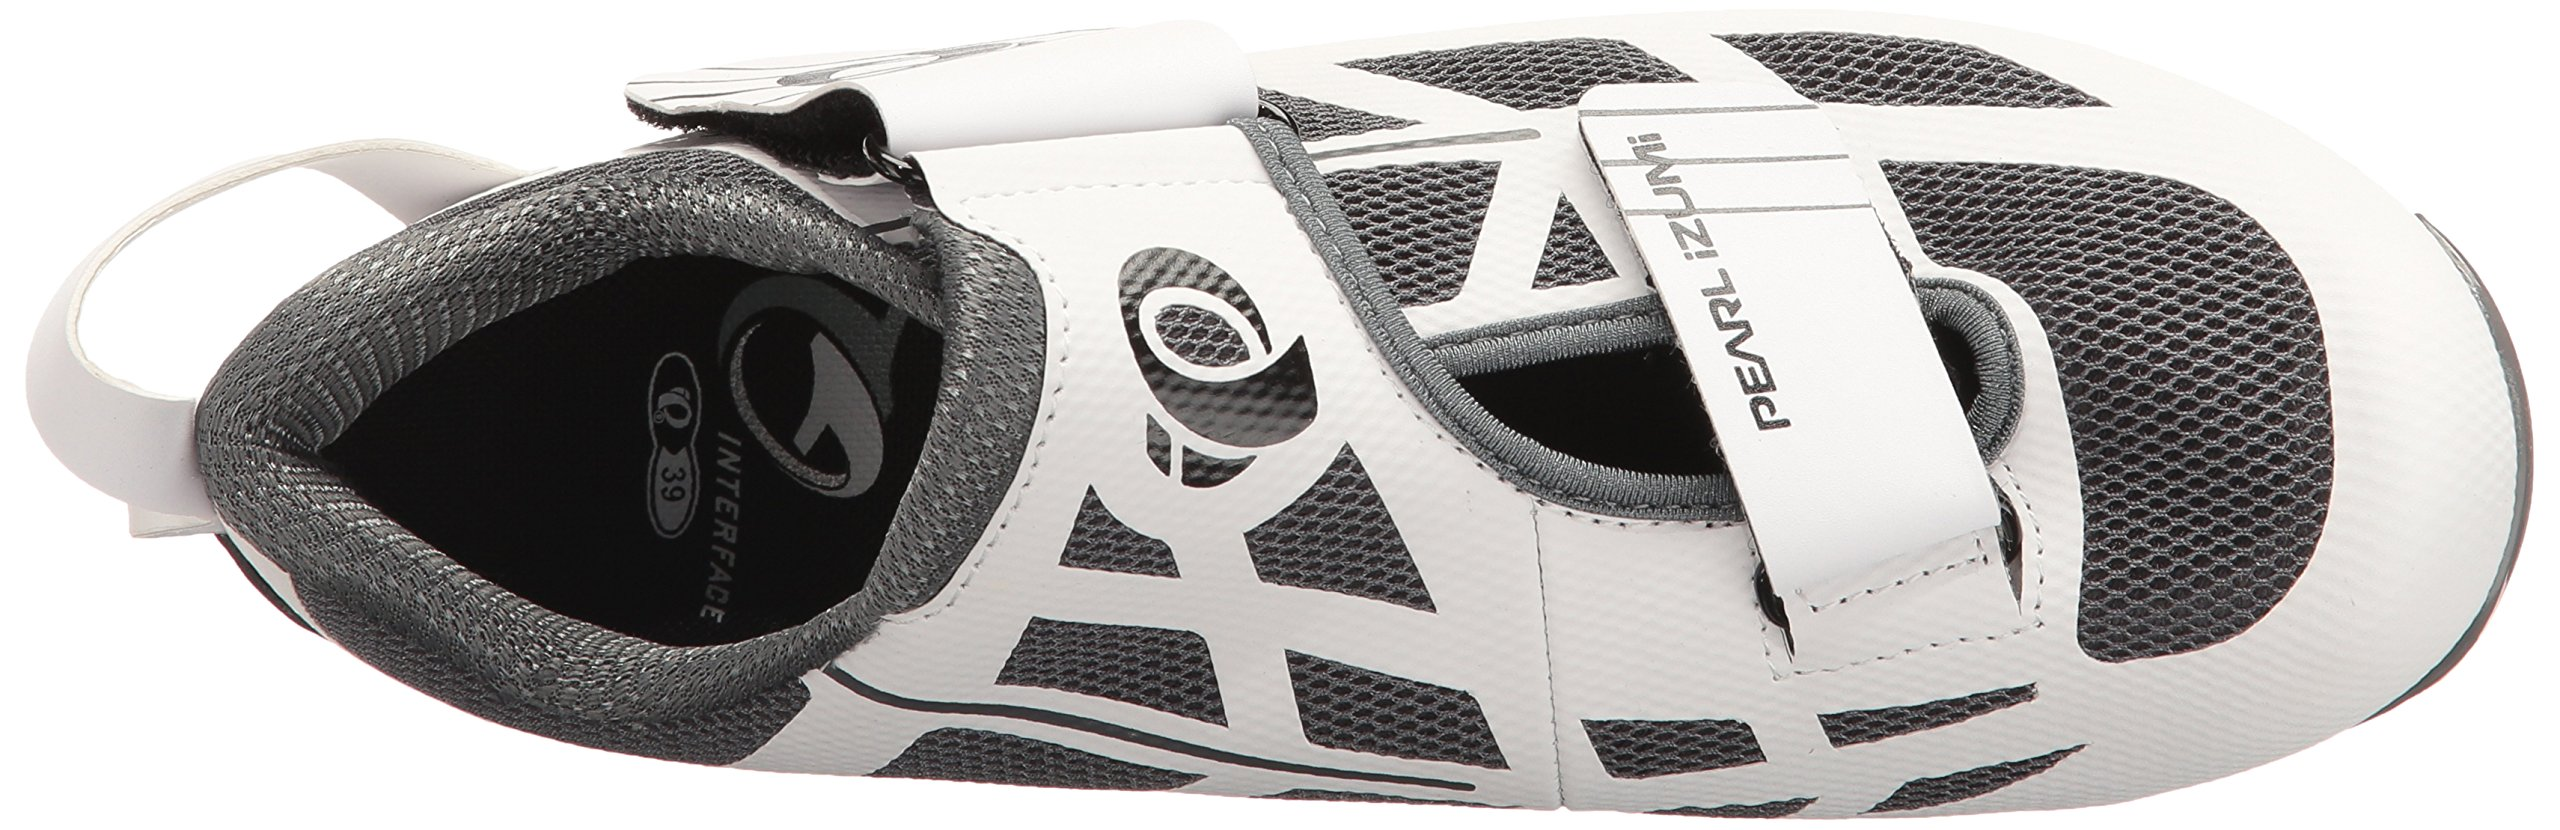 Pearl iZUMi Women's W Tri Fly Select V6 Cycling Shoe, White/Shadow Grey, 42 EU/10 B US by Pearl iZUMi (Image #8)